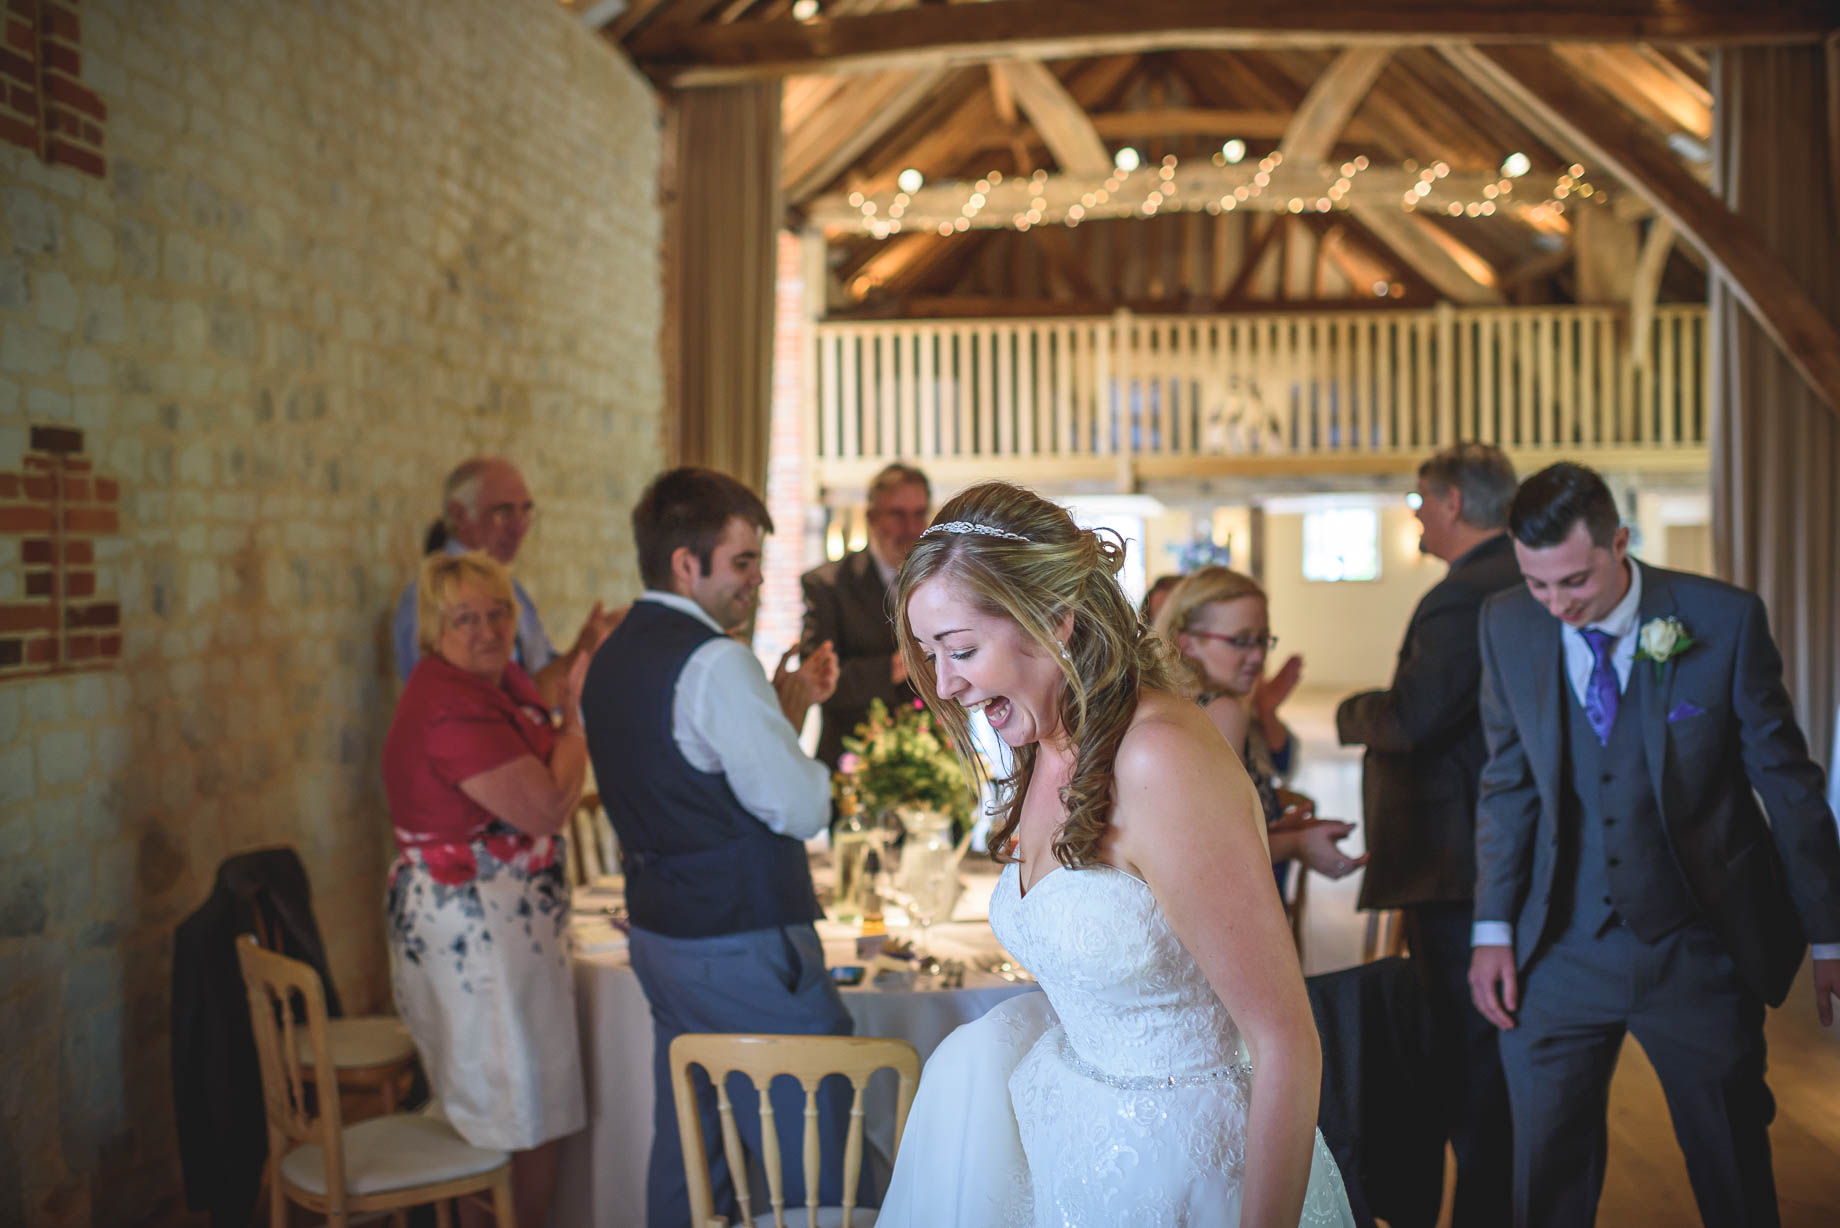 Bury Court Barn wedding photography - Guy Collier - Kirsty and Lewis (116 of 150)